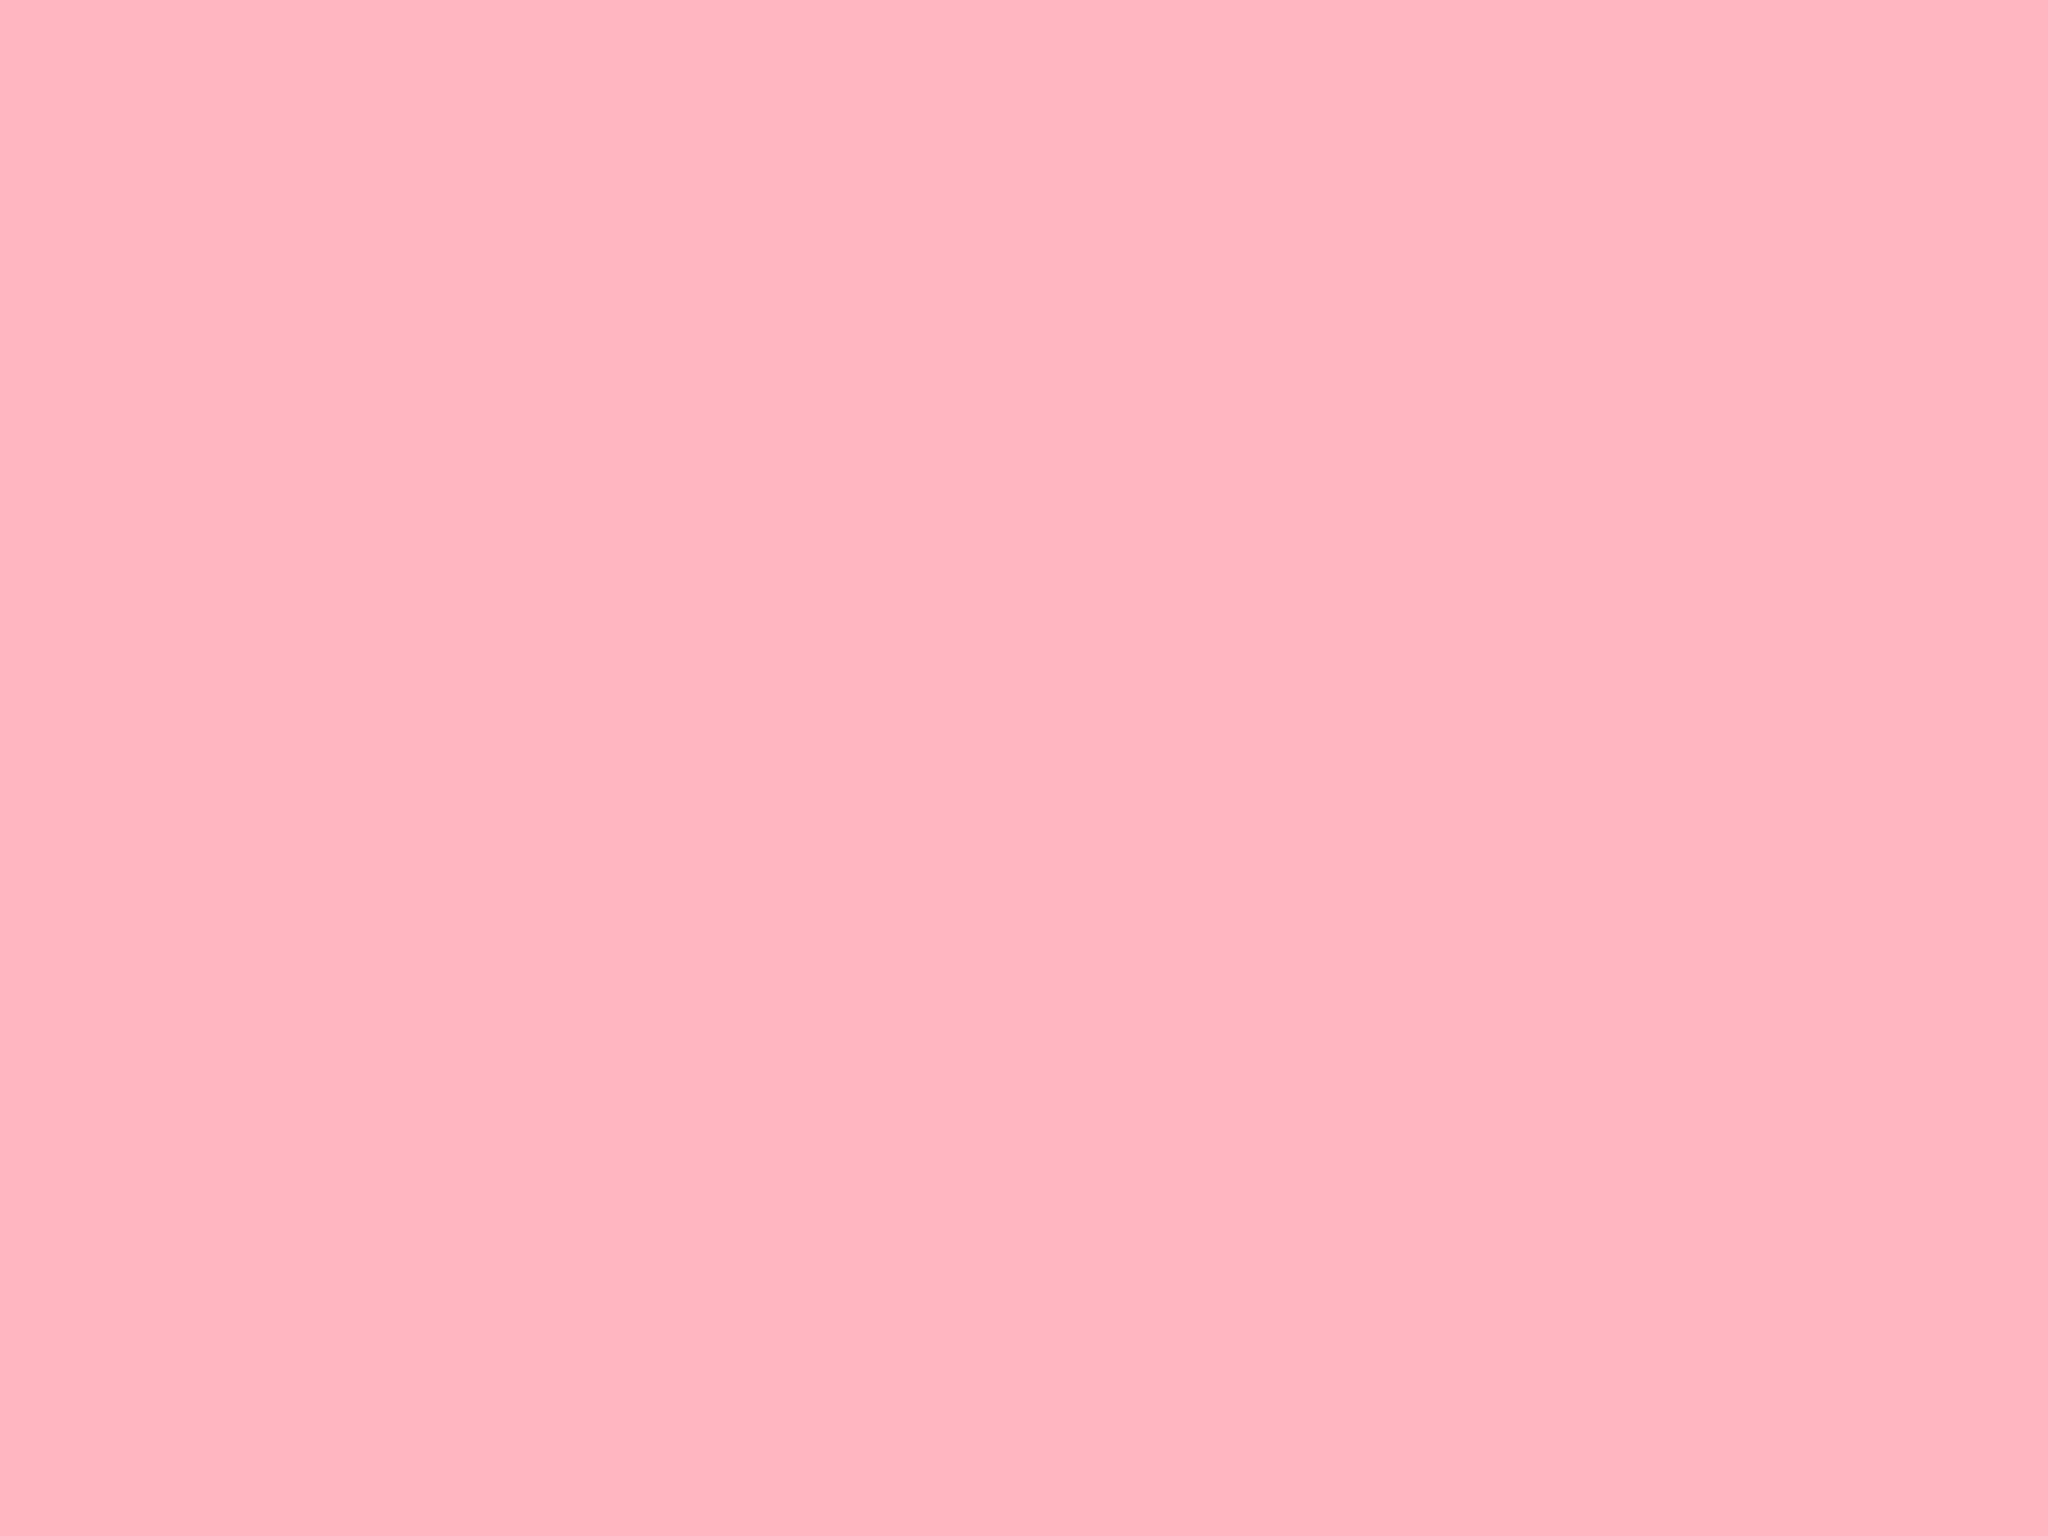 Pink Polos Backgrounds - Wallpaper Cave